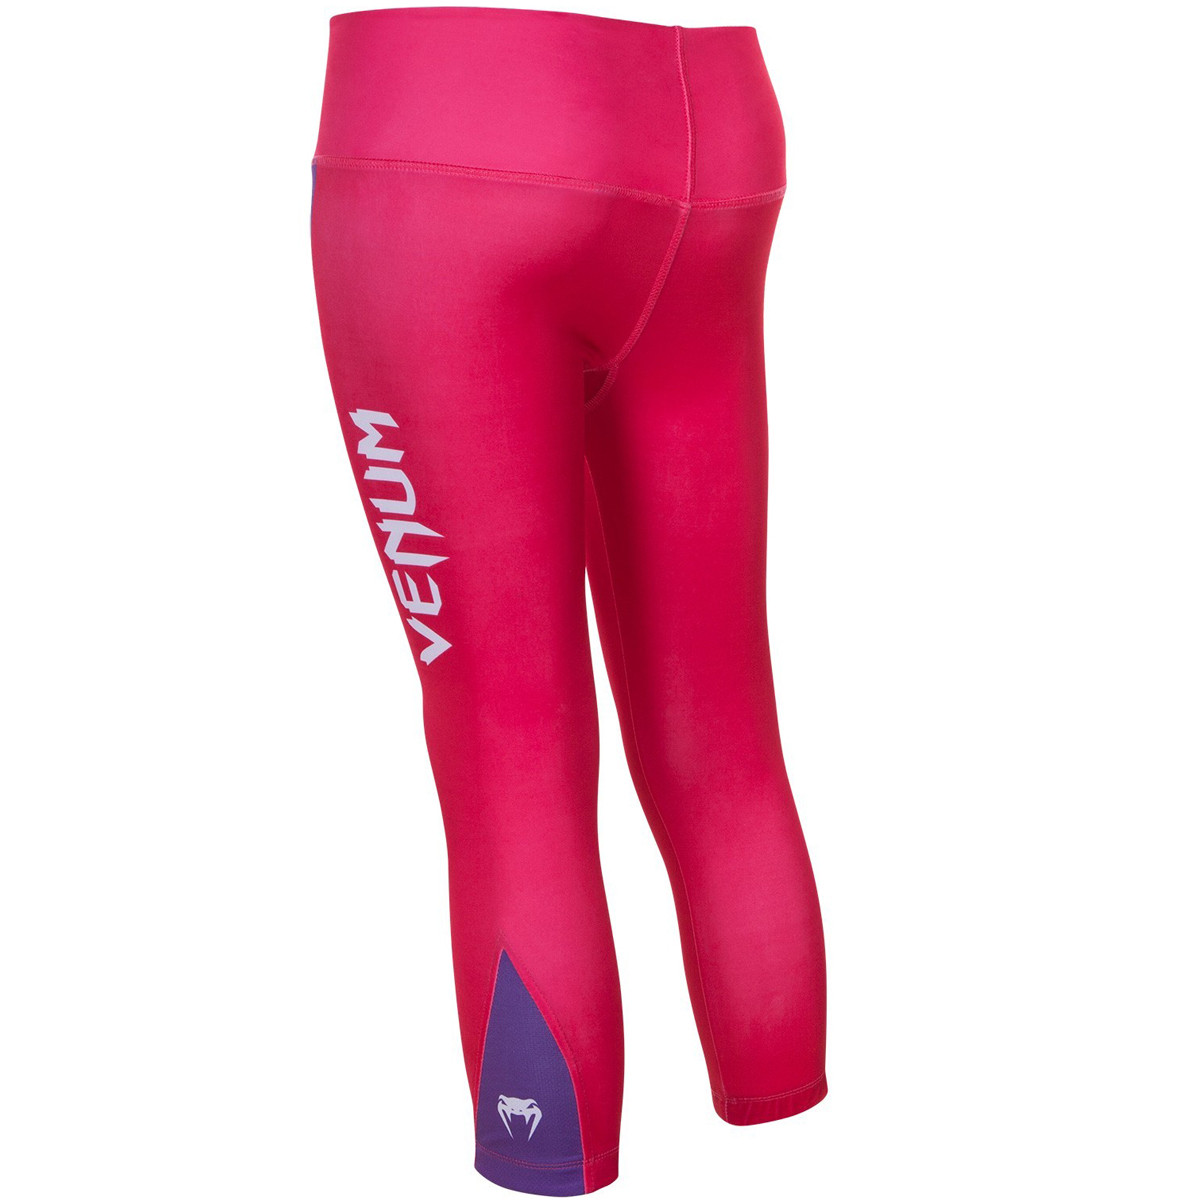 Venum Body Fit Leggings available at www.thejiujitsushop.com   Enjoy Free Shipping from The Jiu Jitsu Shop today!